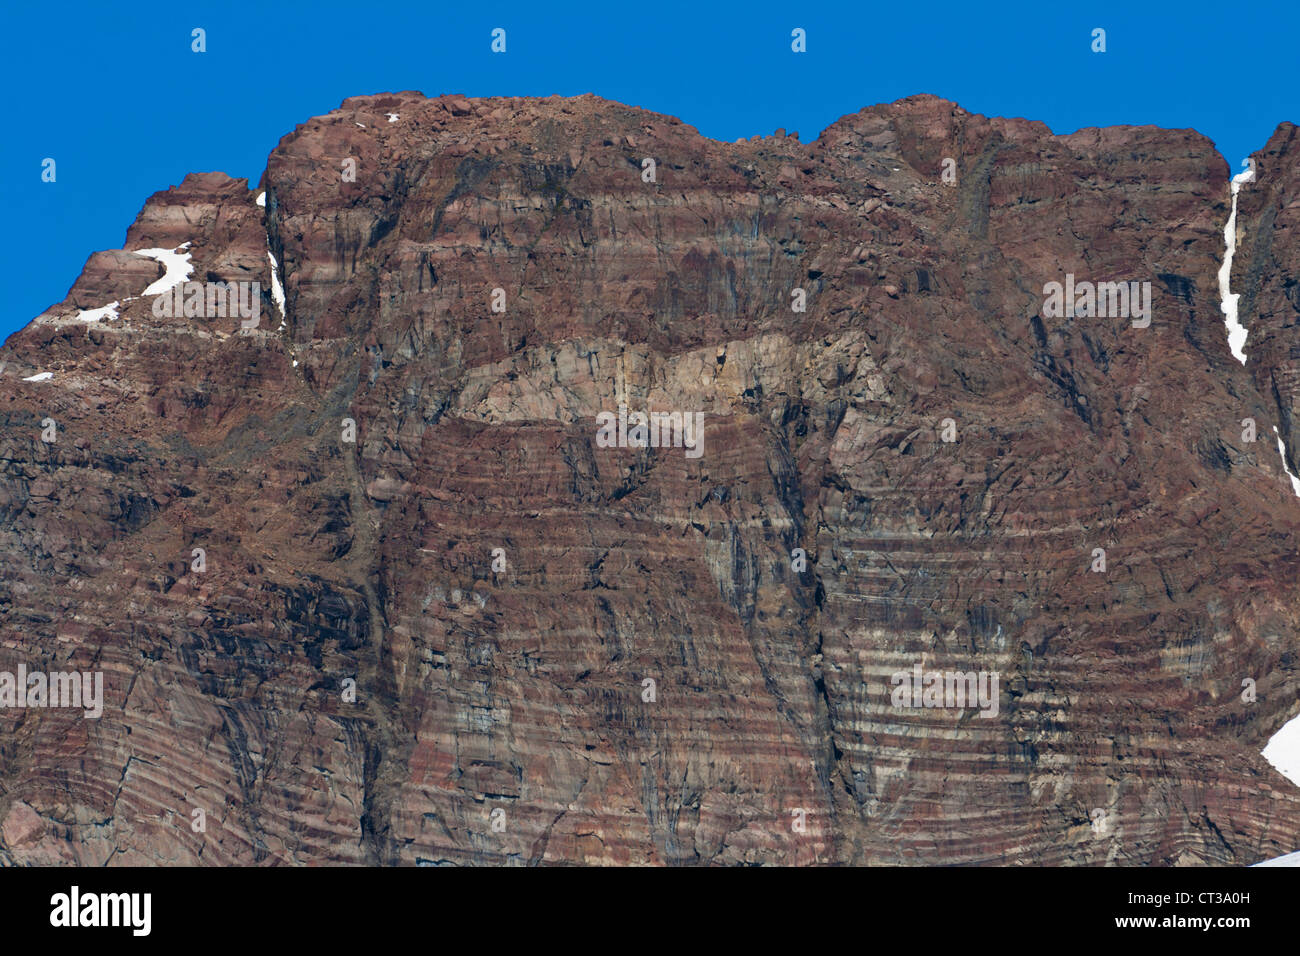 Igneous layering in the Skaergaard intrusion - Stock Image